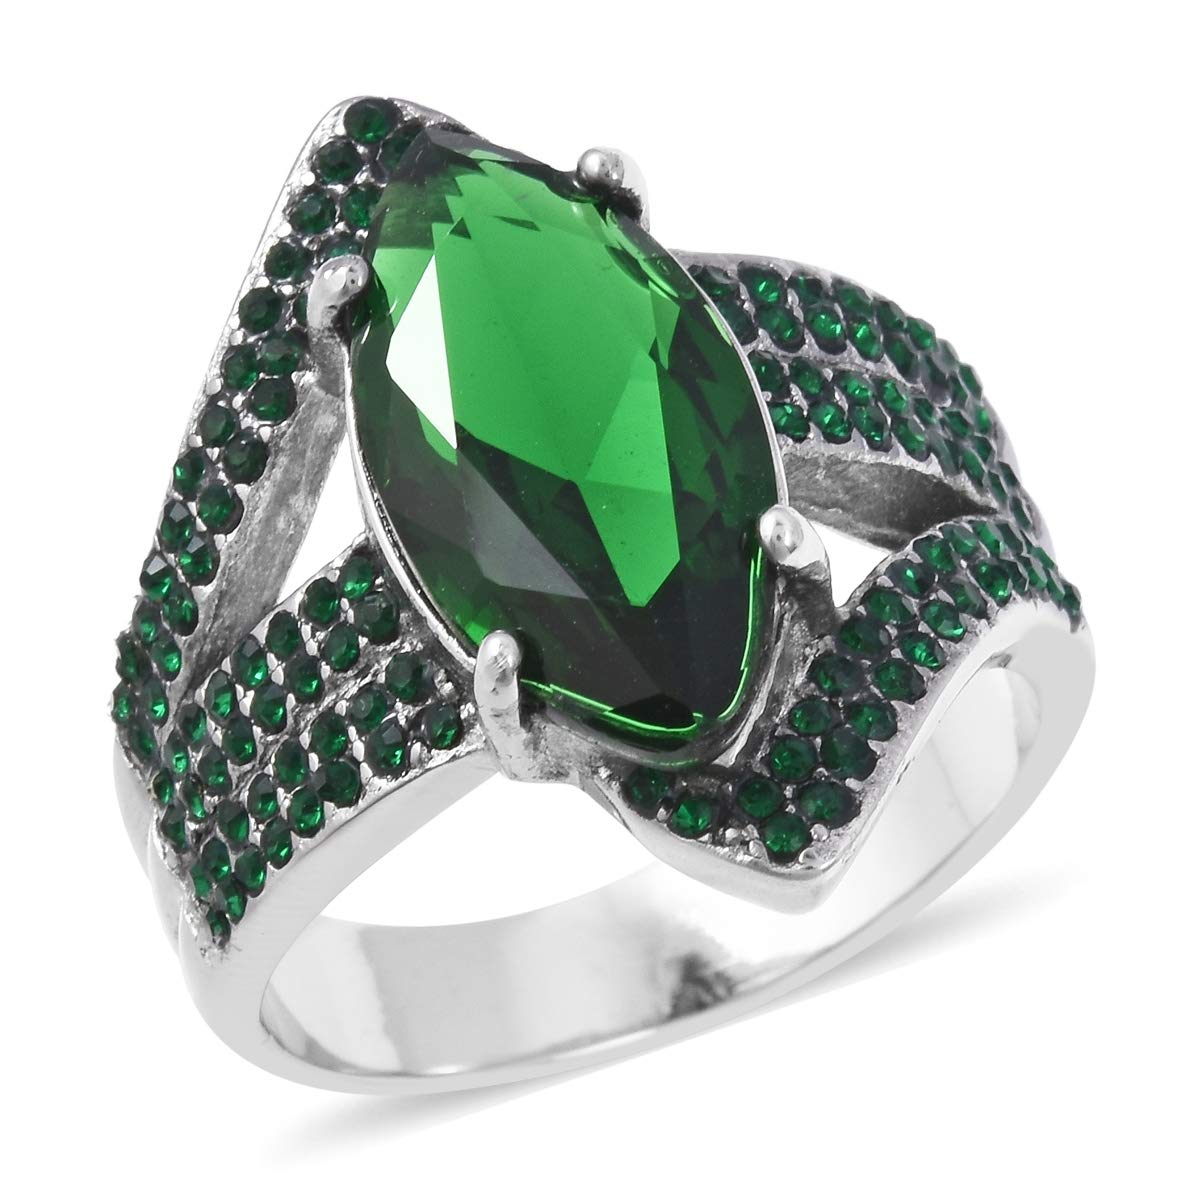 Shop LC Delivering Joy Statement Ring Stainless Steel Marquee Green Cubic Zirconia CZ Gift Jewelry for Women Size 8 Ct 7.8